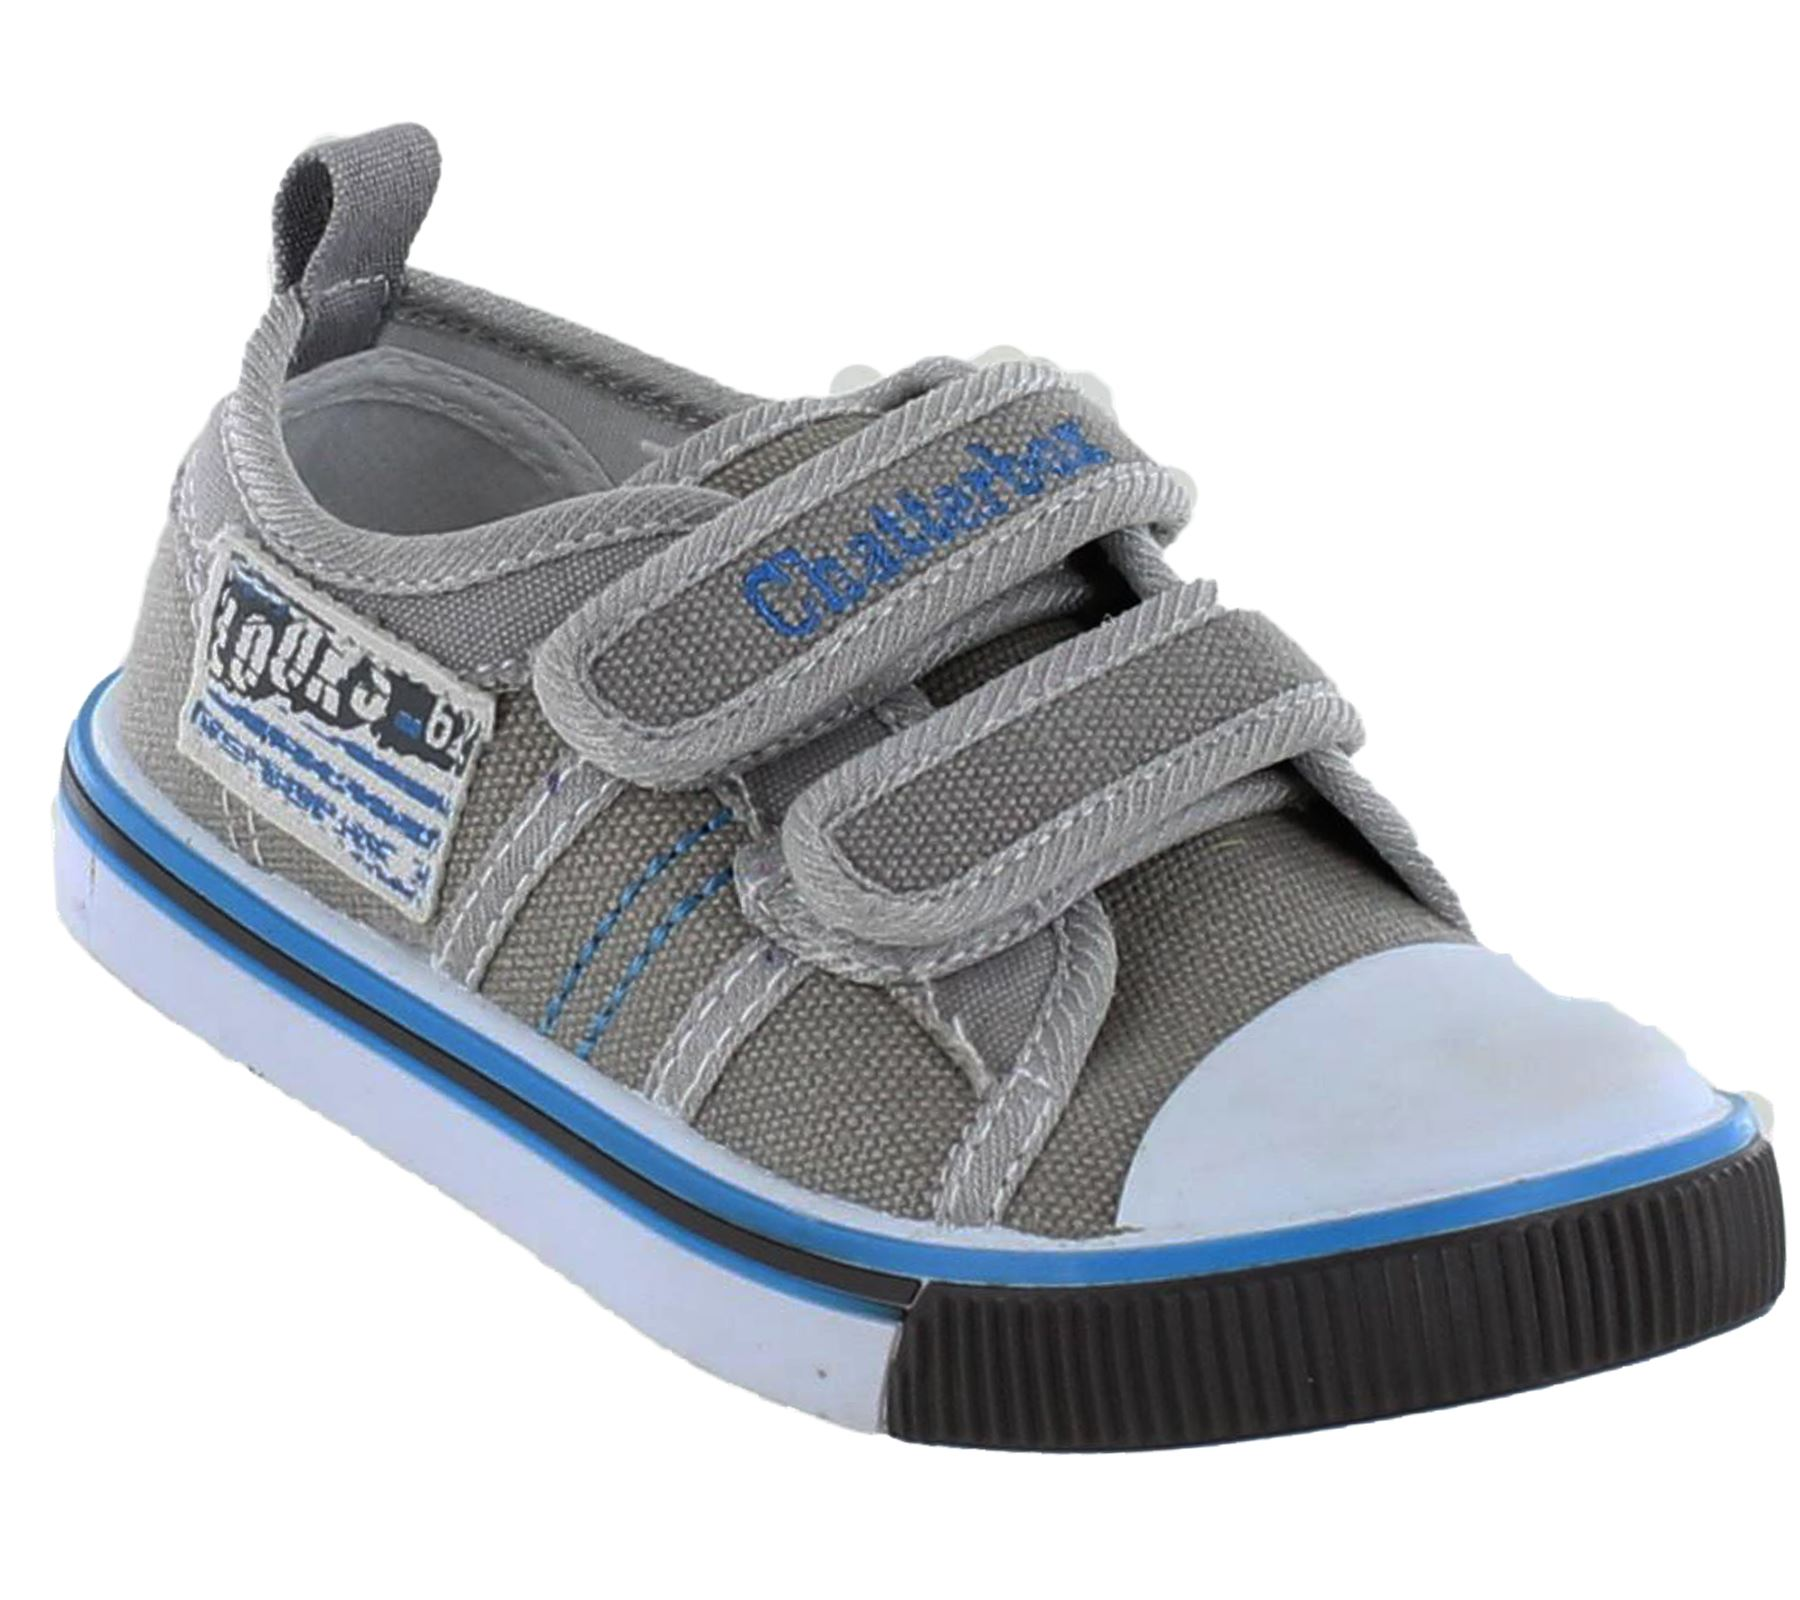 boys velcro trainers infants canvas plimsoles pumps